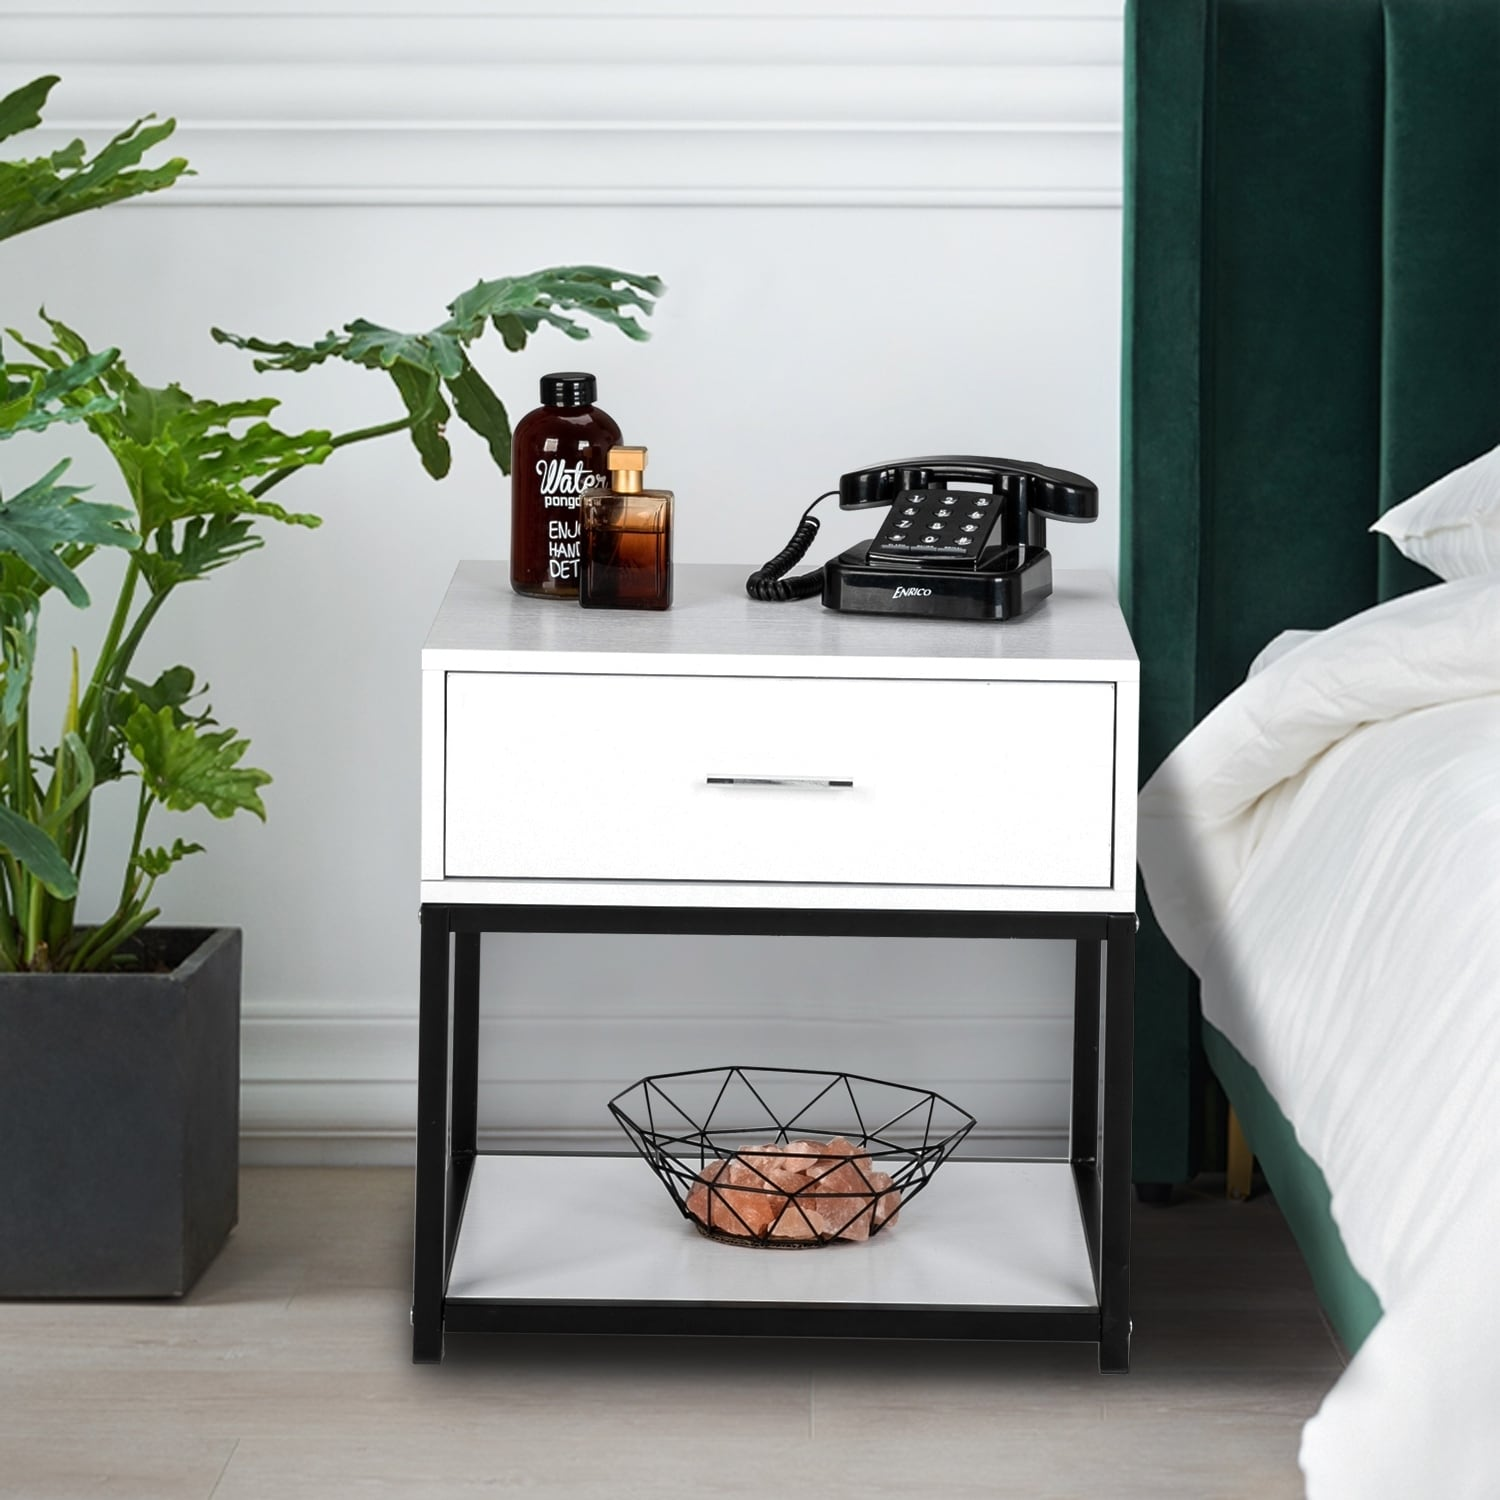 19 Modern And Simple Style Nightstand With Drawer Overstock 30984914